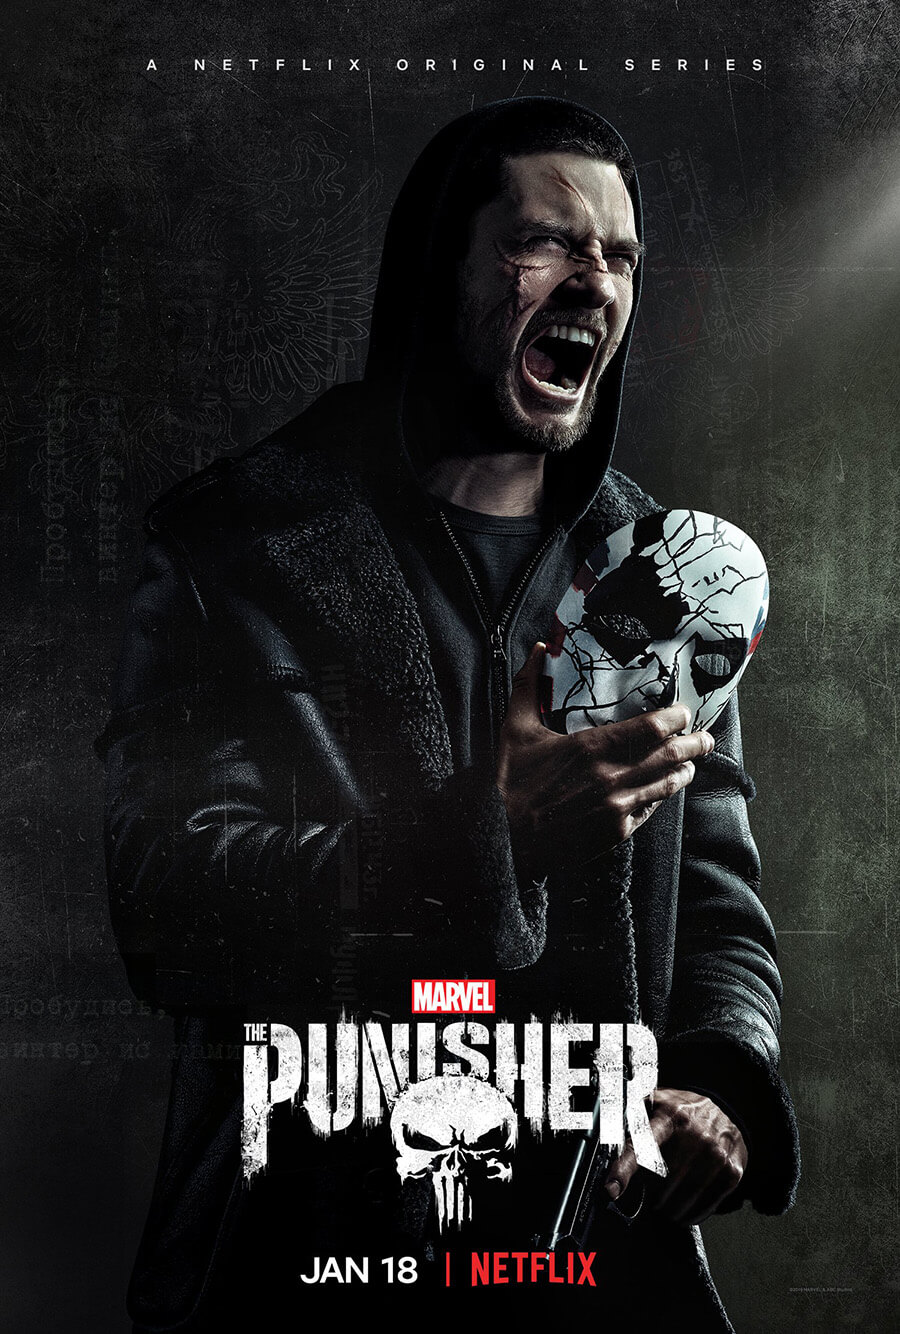 Punisher sezon 2 nowe promo